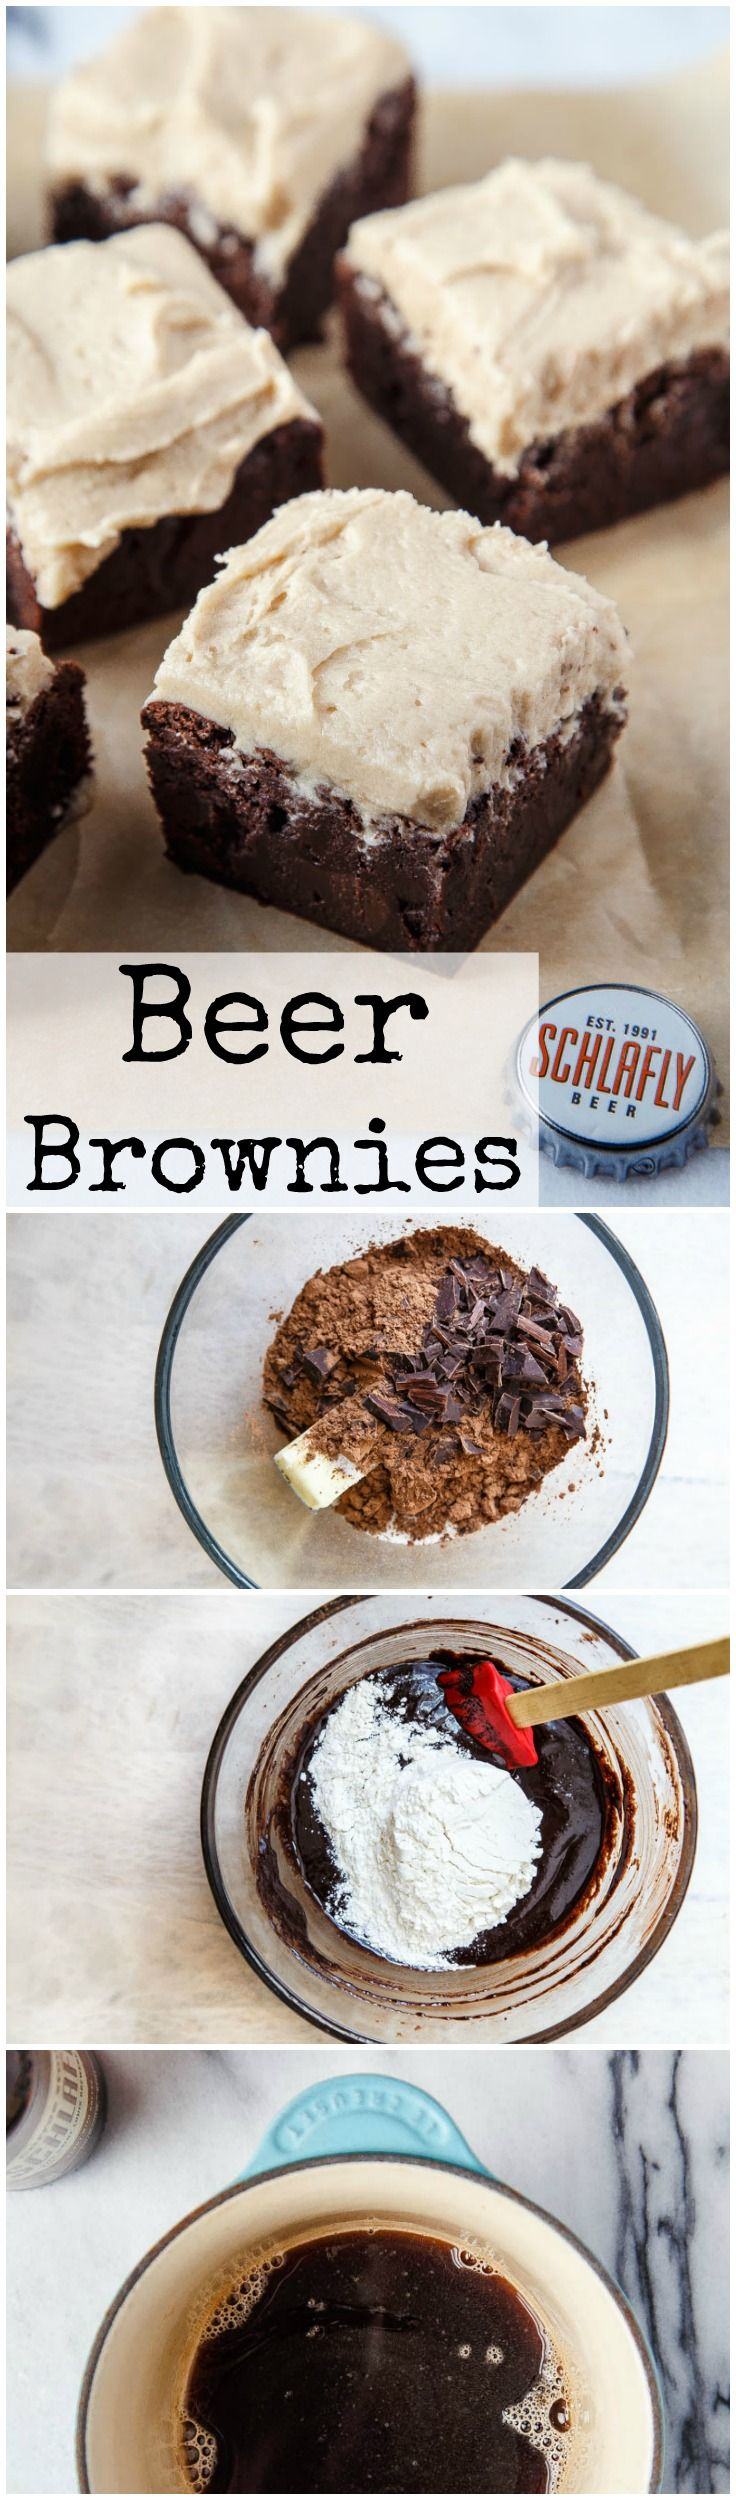 Top 25 best craft beer ideas on pinterest craft beer for Craft beer pubs near me